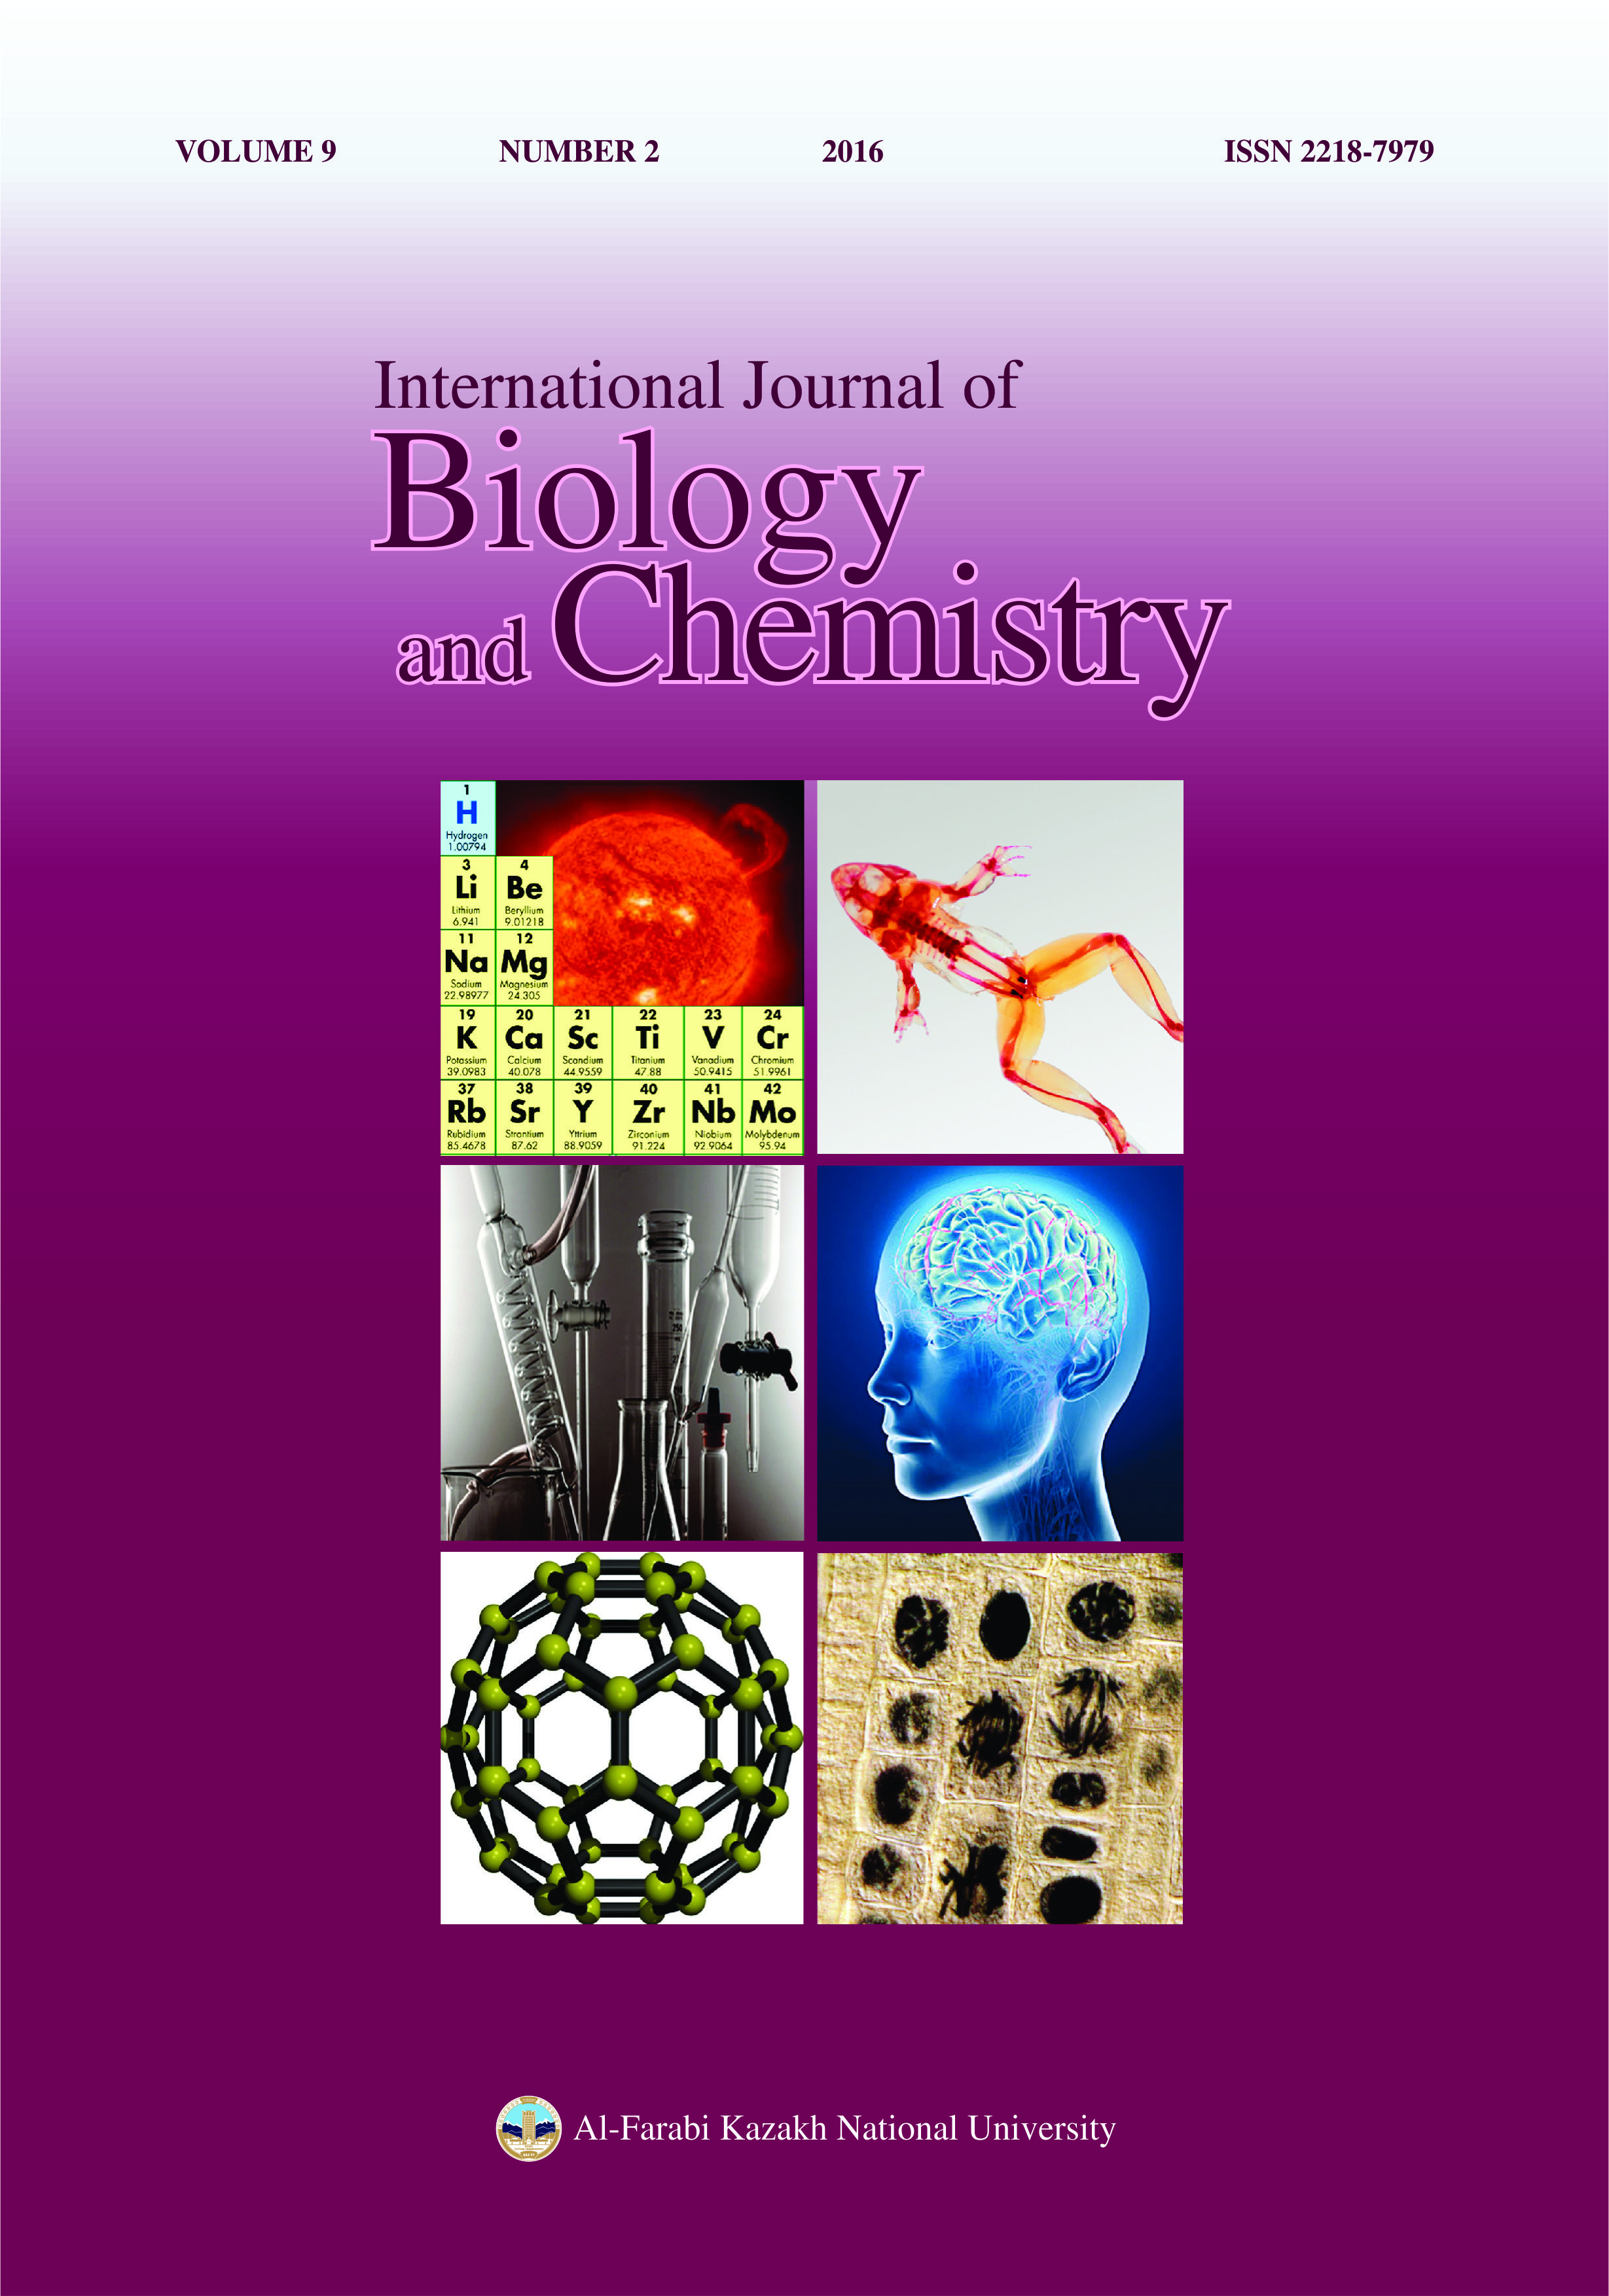 View Vol. 9 No. 2 (2016): International Journal of Biology and Chemistry